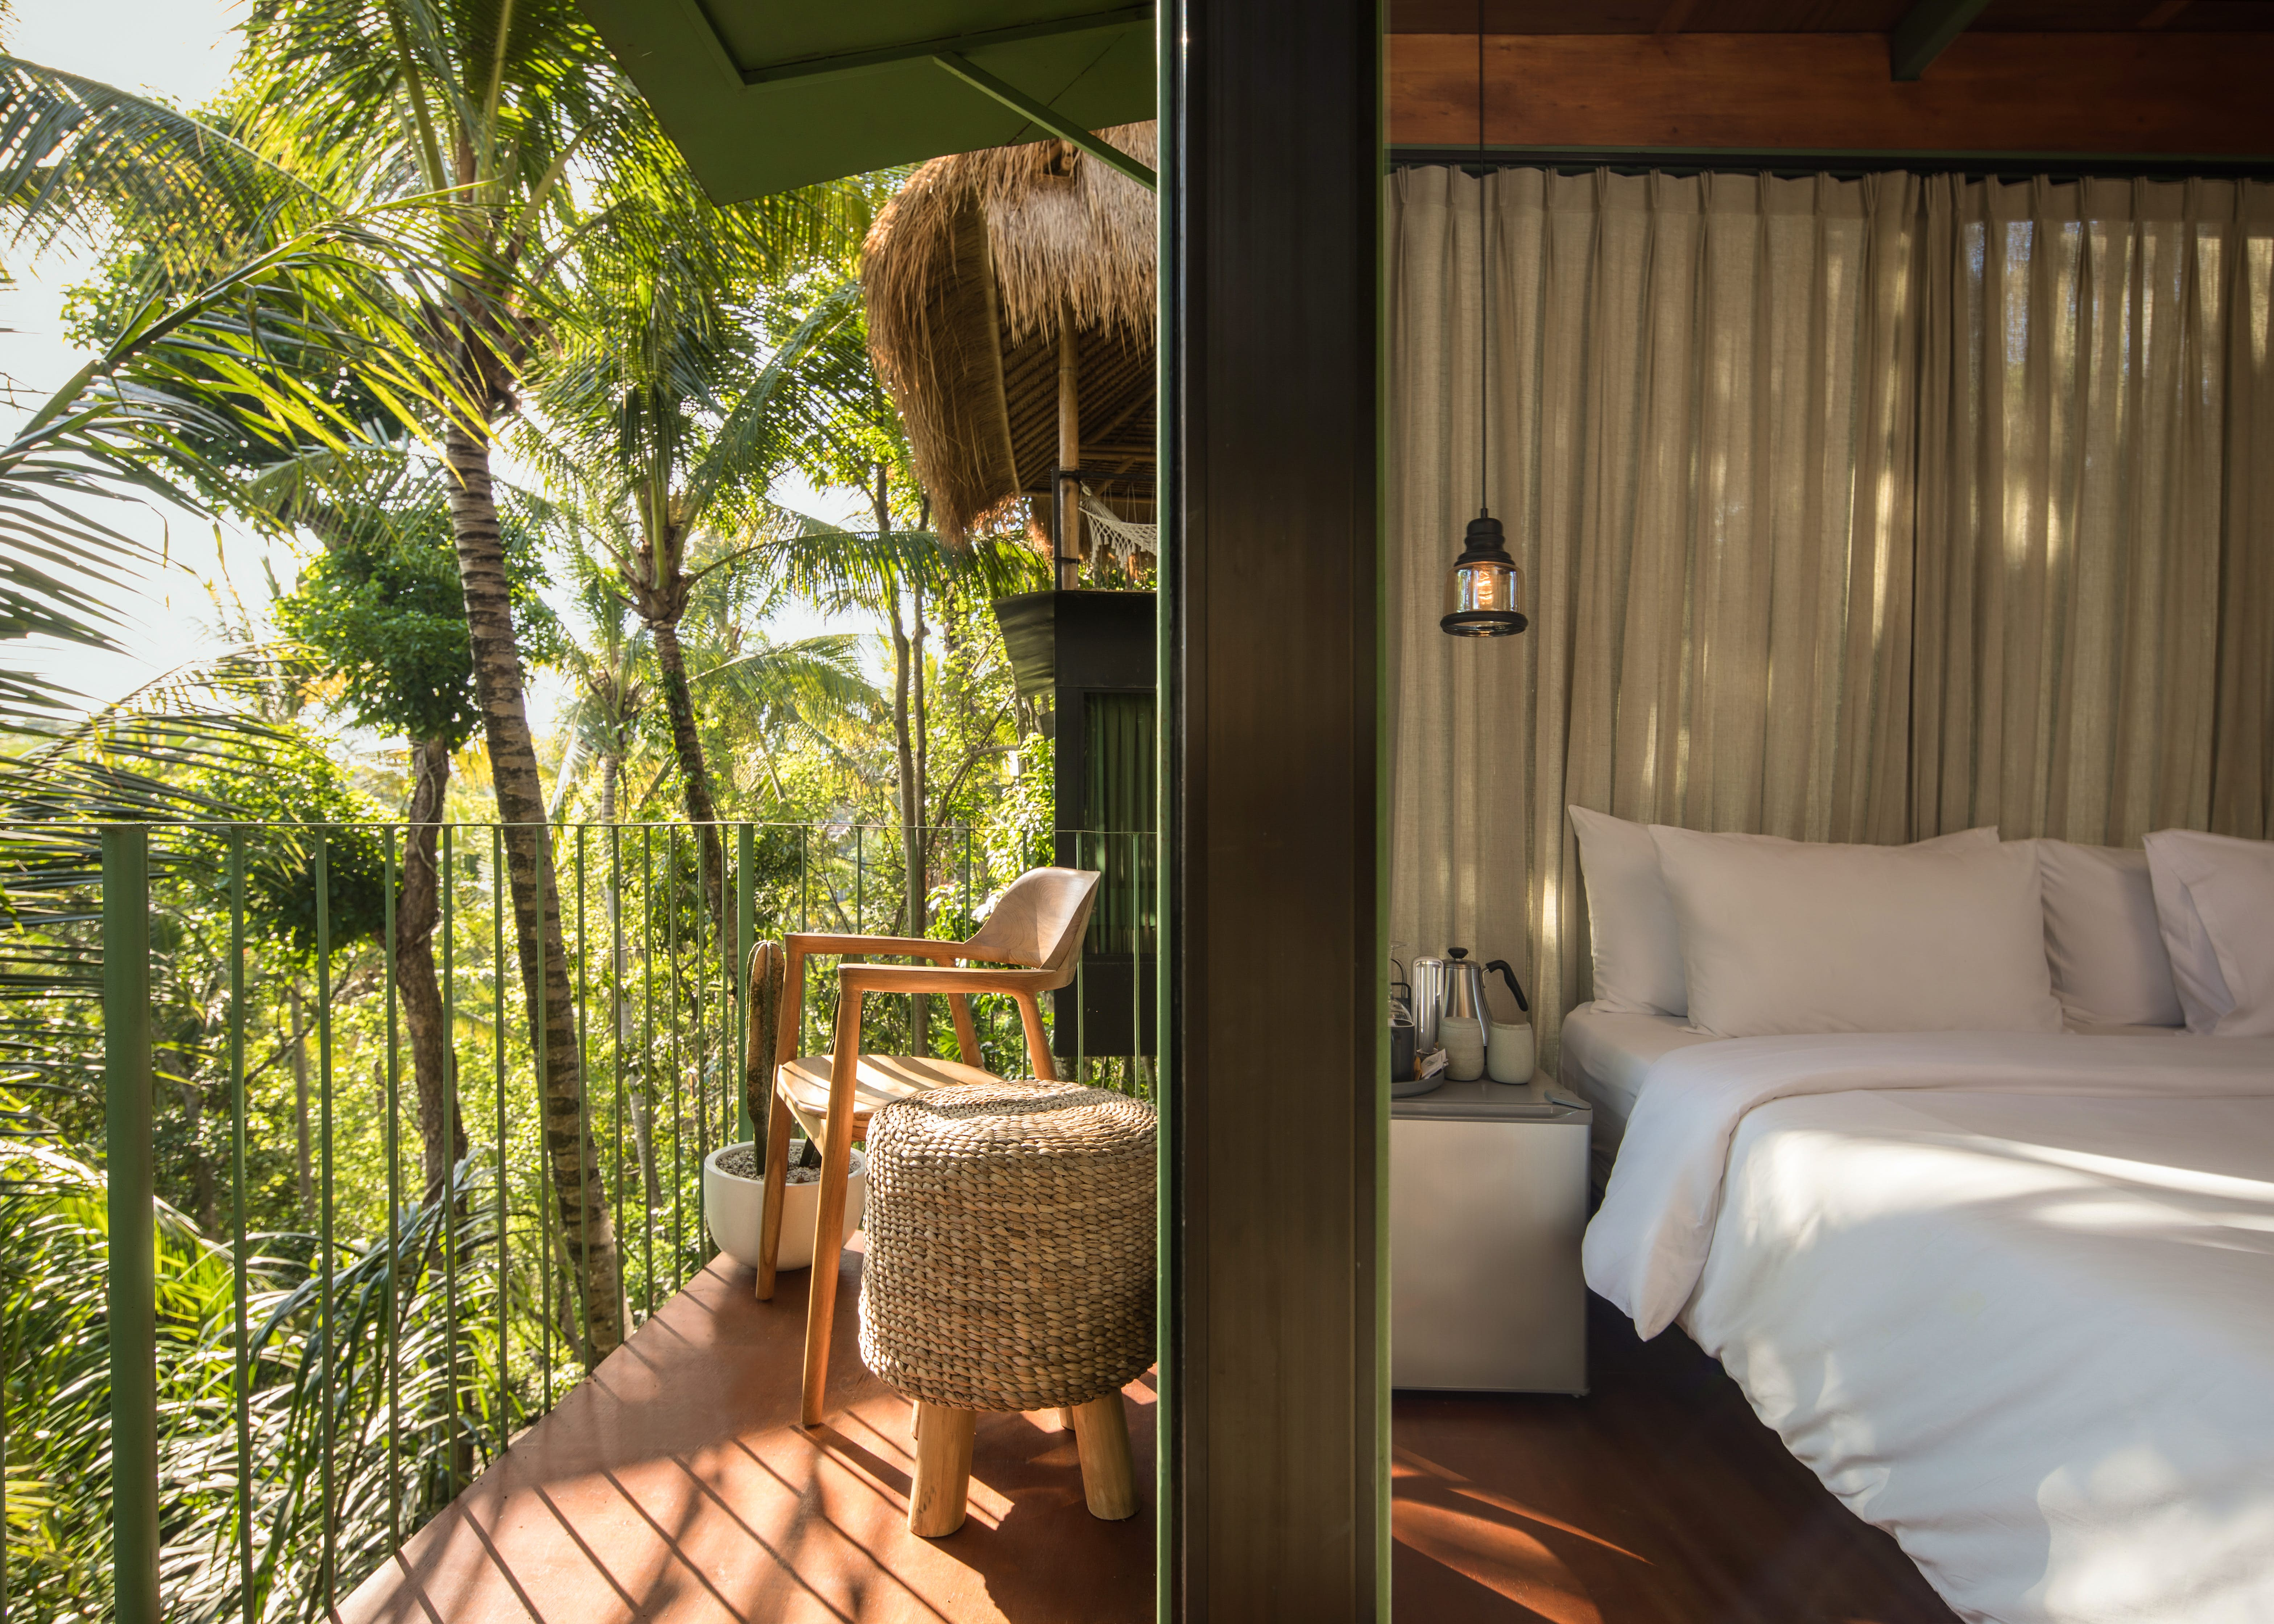 Balcony shot of a treetop lodge in a Balinese jungle